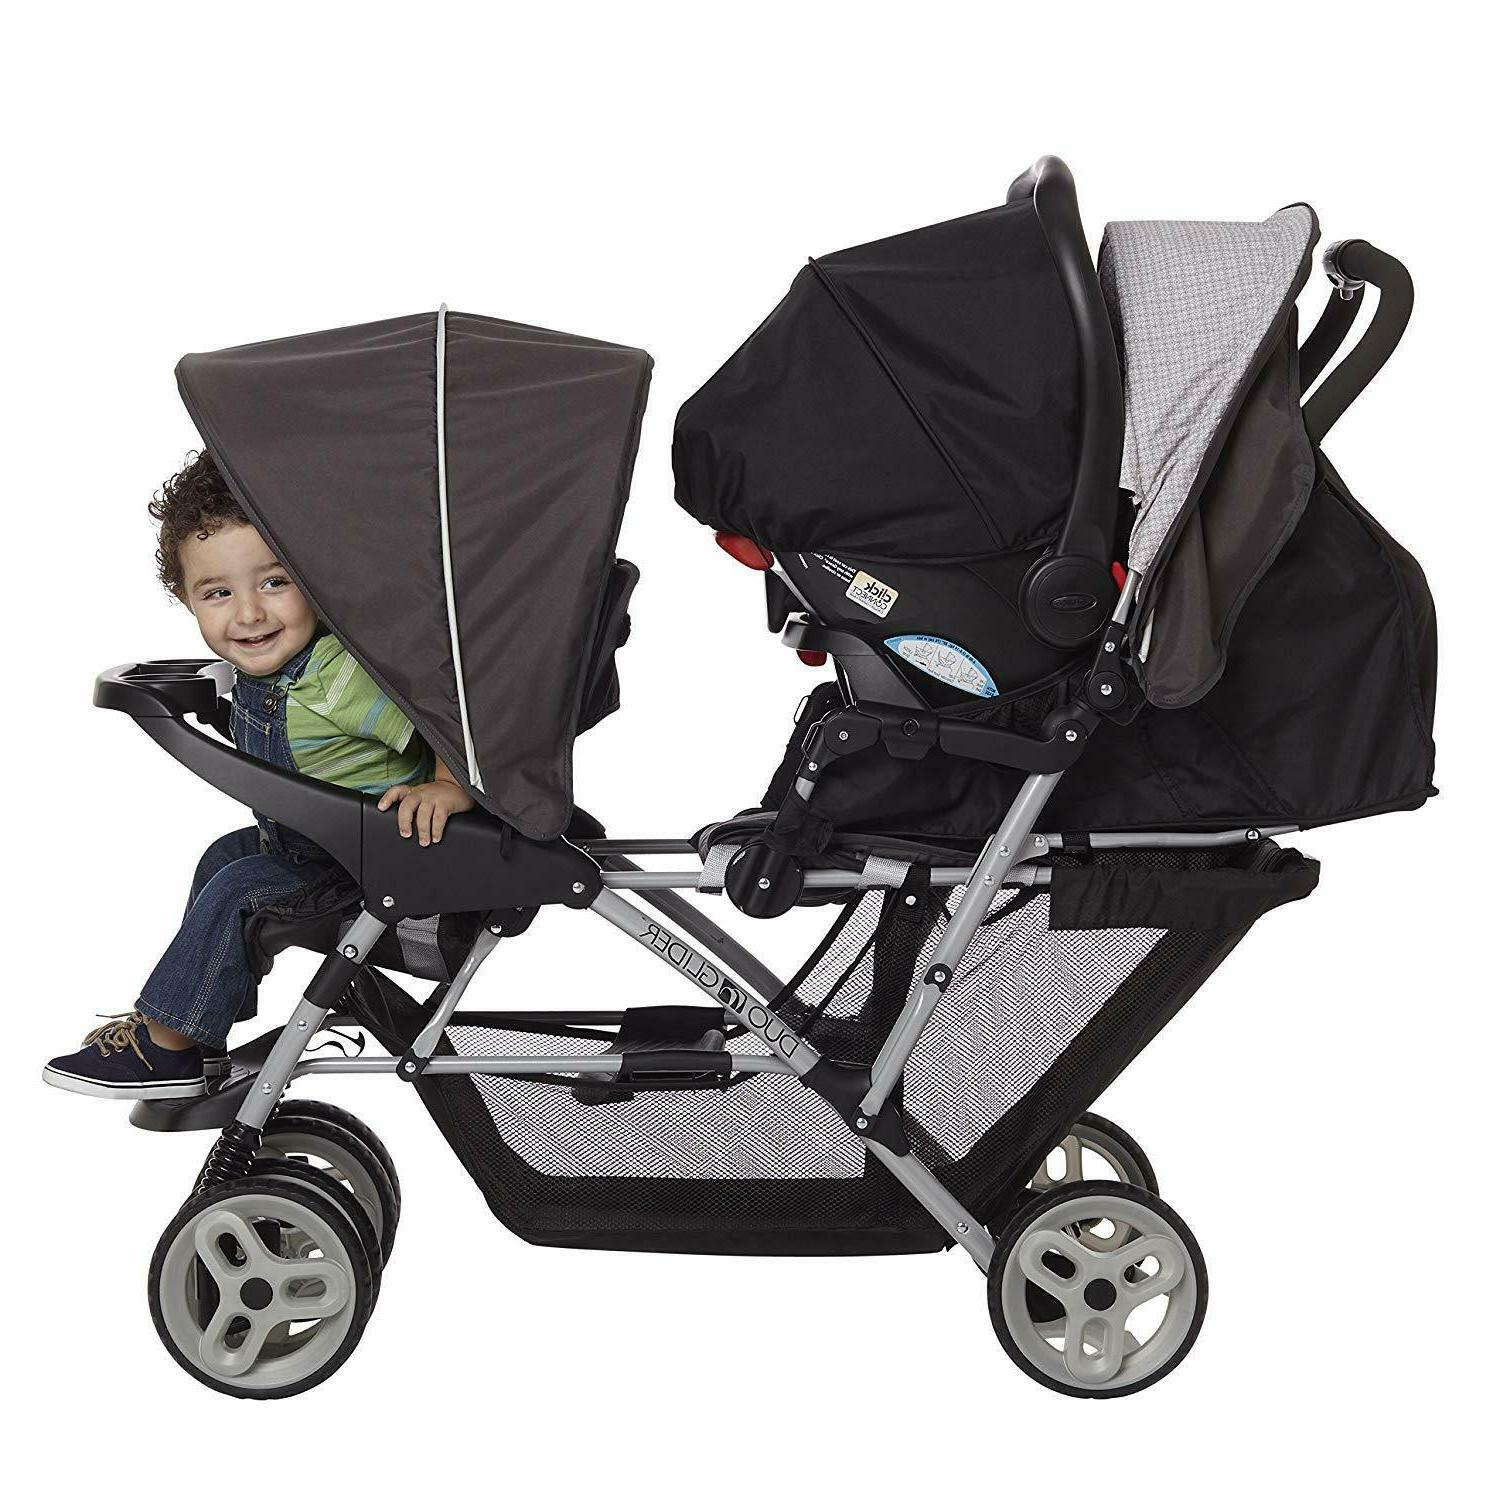 Graco Infant Double Stroller Foldable Buggy with Seating